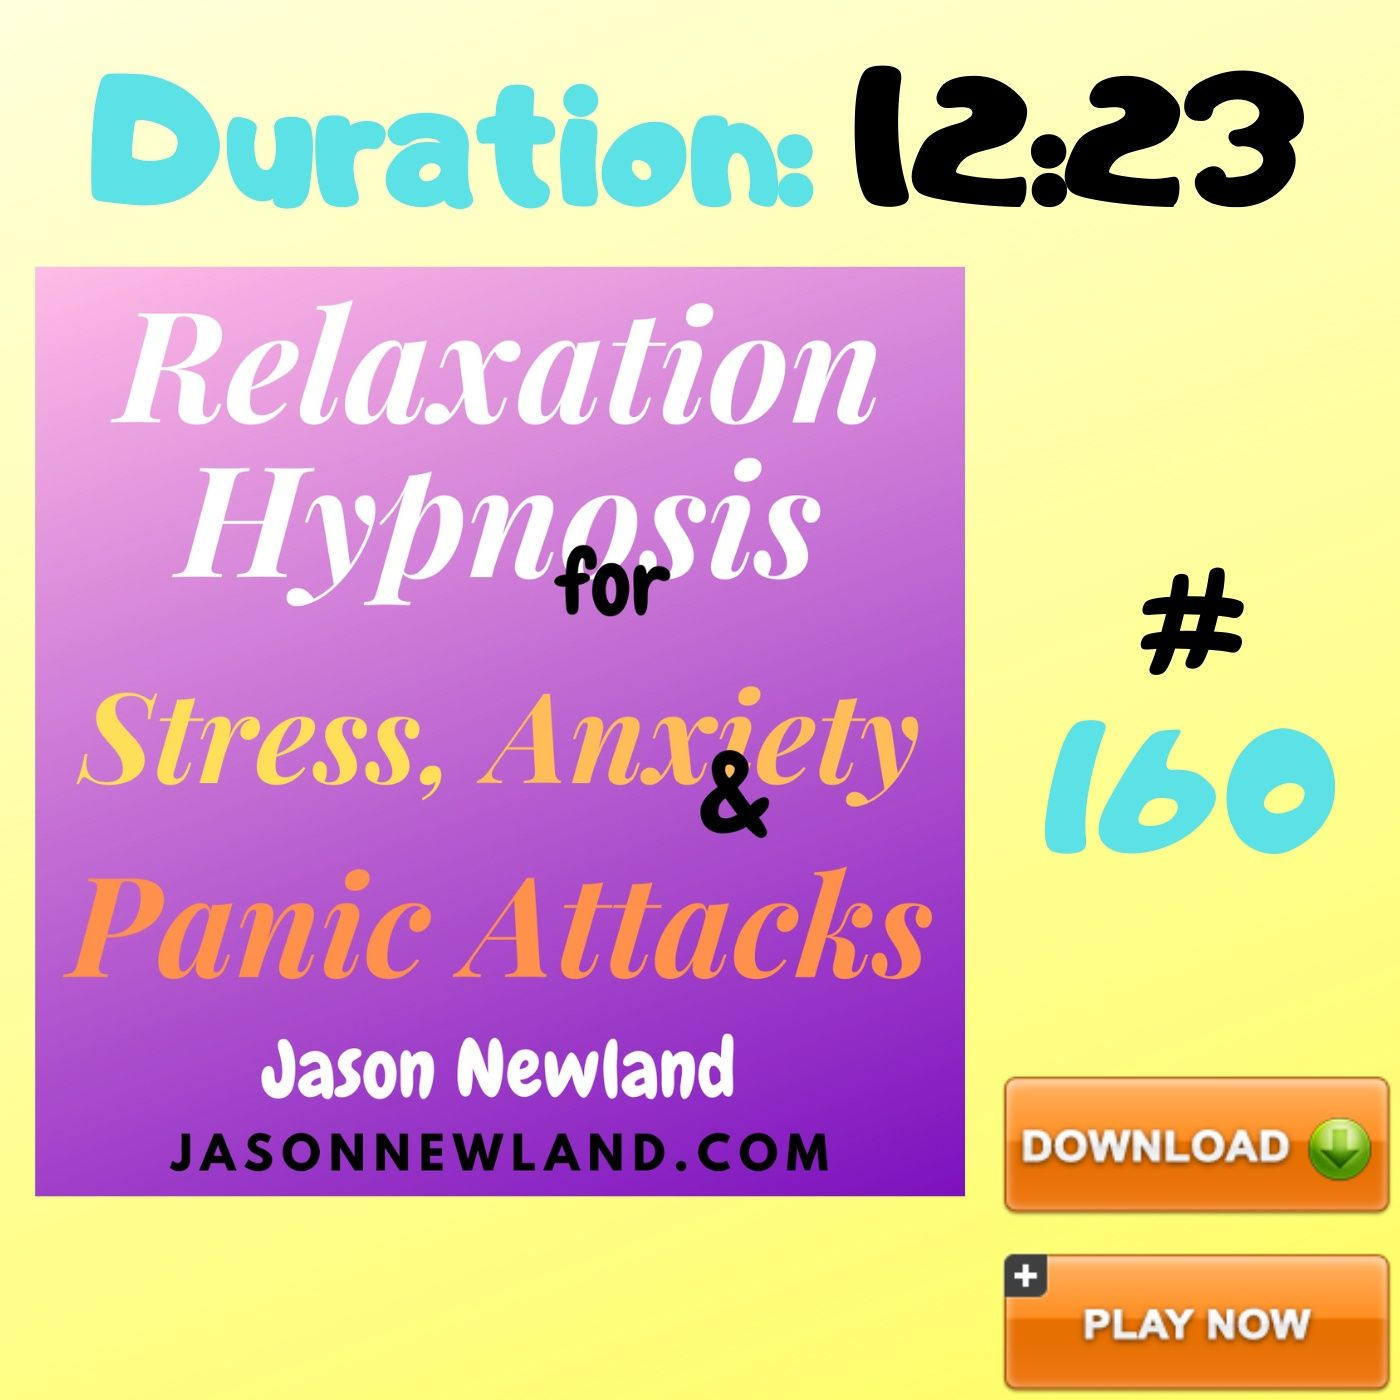 "#160 Relaxation Hypnosis for Stress, Anxiety & Panic Attacks - ""EXHALE STRESS, INHALE RELAXATION"" (Jason Newland) (2nd July 2020)"